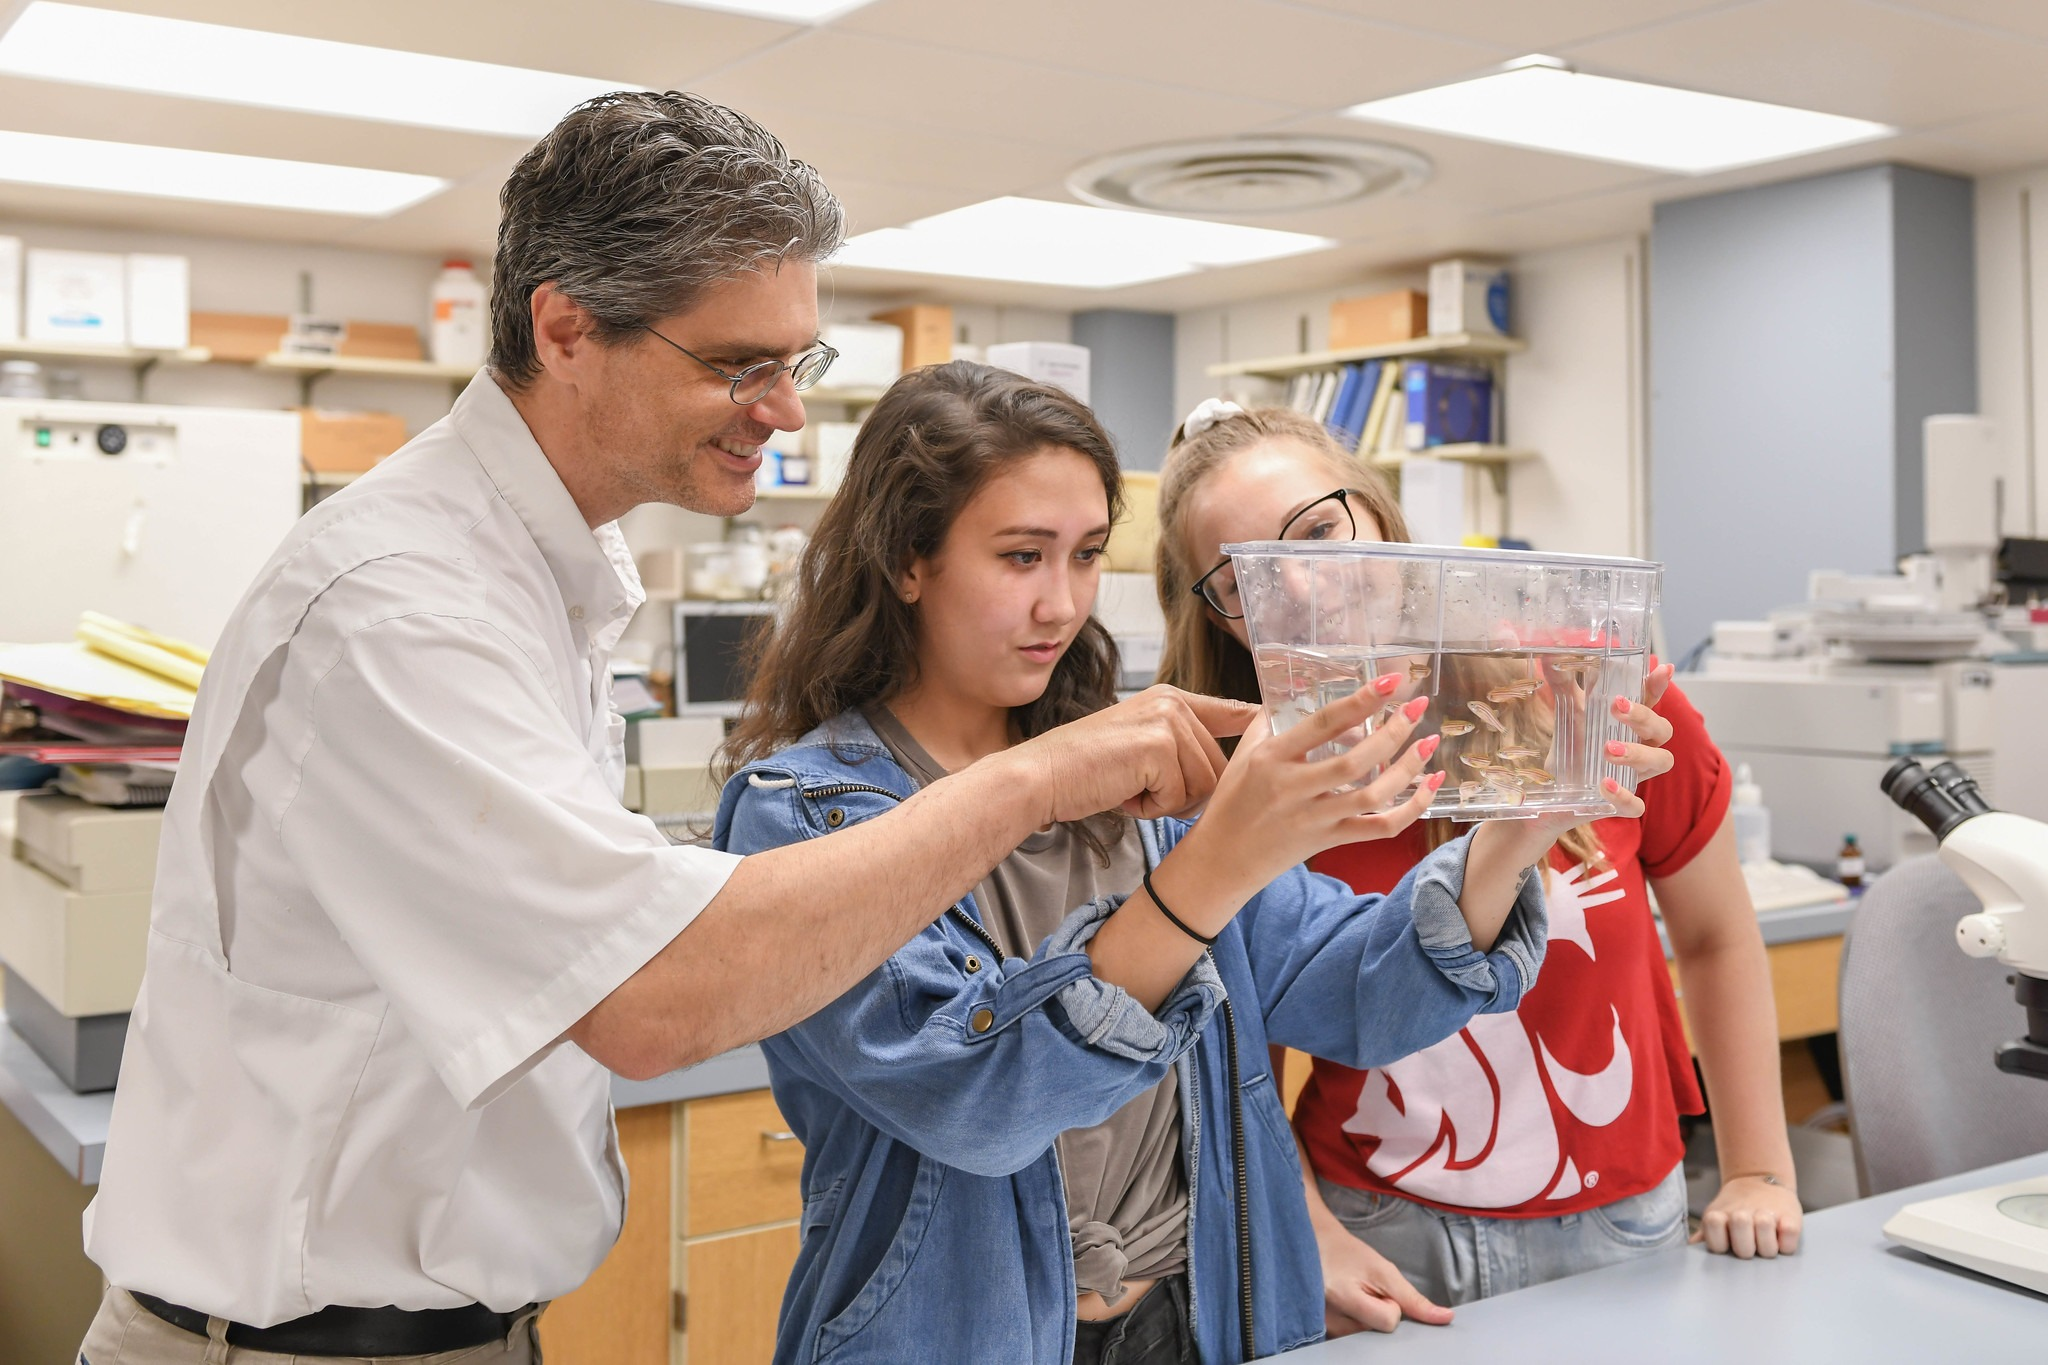 Students Ellie Barber and Danielle Ringo work with Jim Cooper, instructor of biology, in Cooper's fish laboratory as part of their Chancellor's Summer Scholars experience.